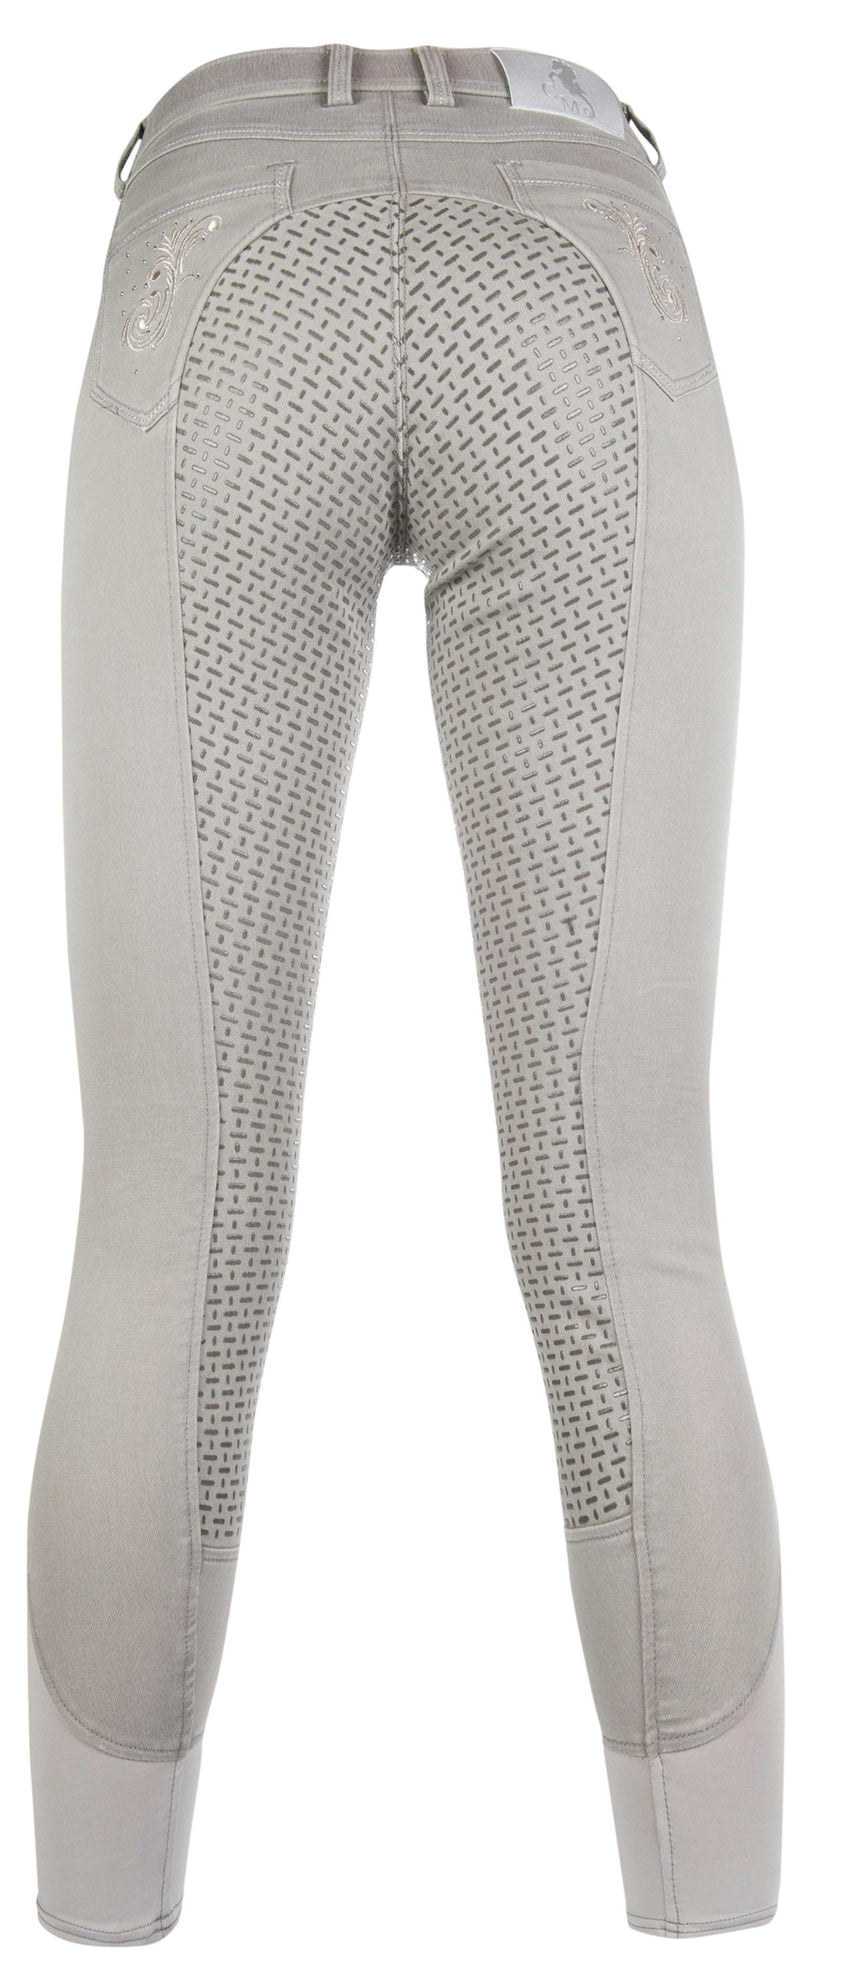 Horse riding Jean tights